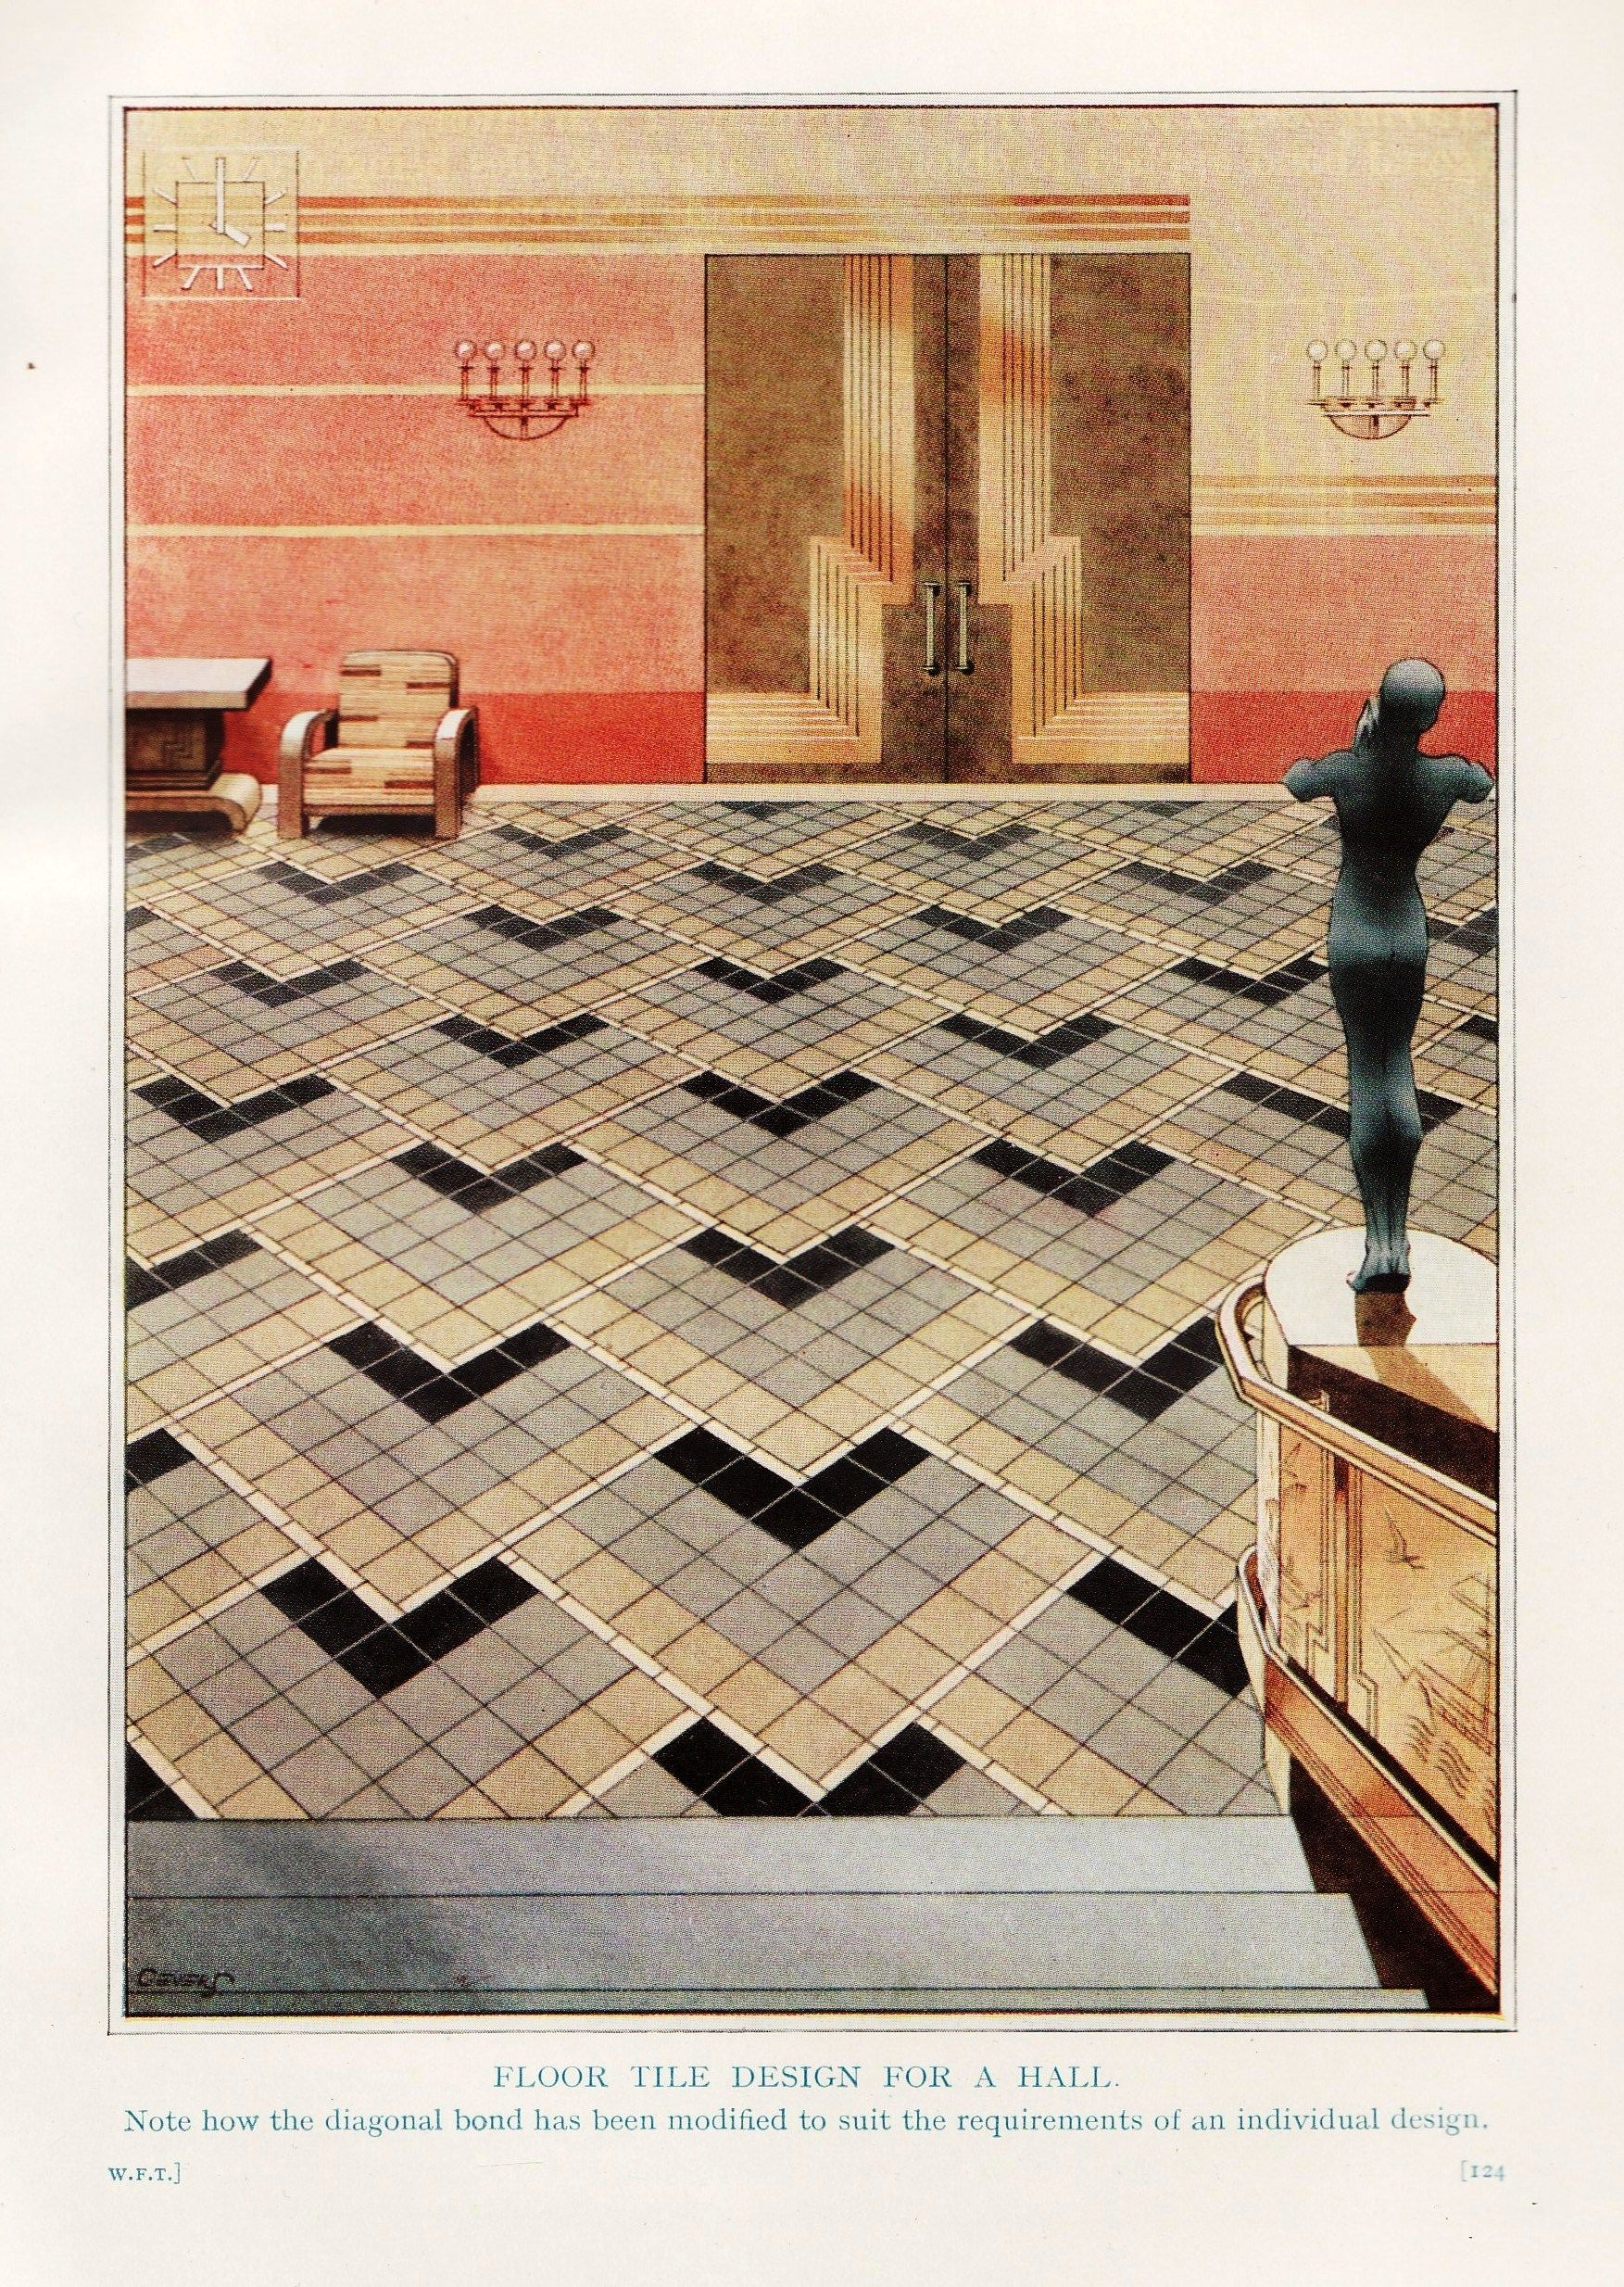 Art Deco tiles are amongst the most elegant and stylish